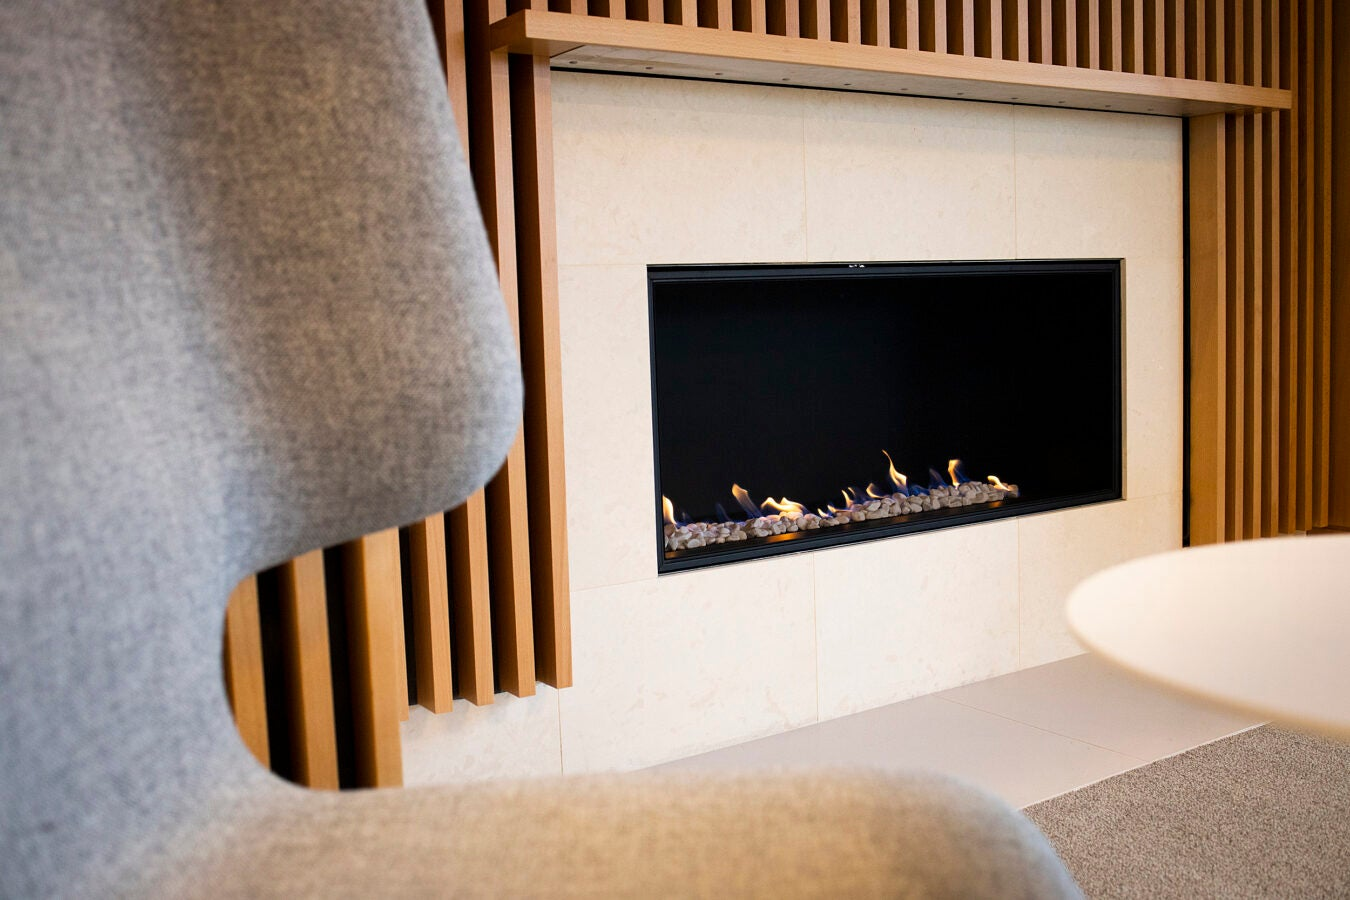 A modern gas fireplace at the Smith Campus Center.